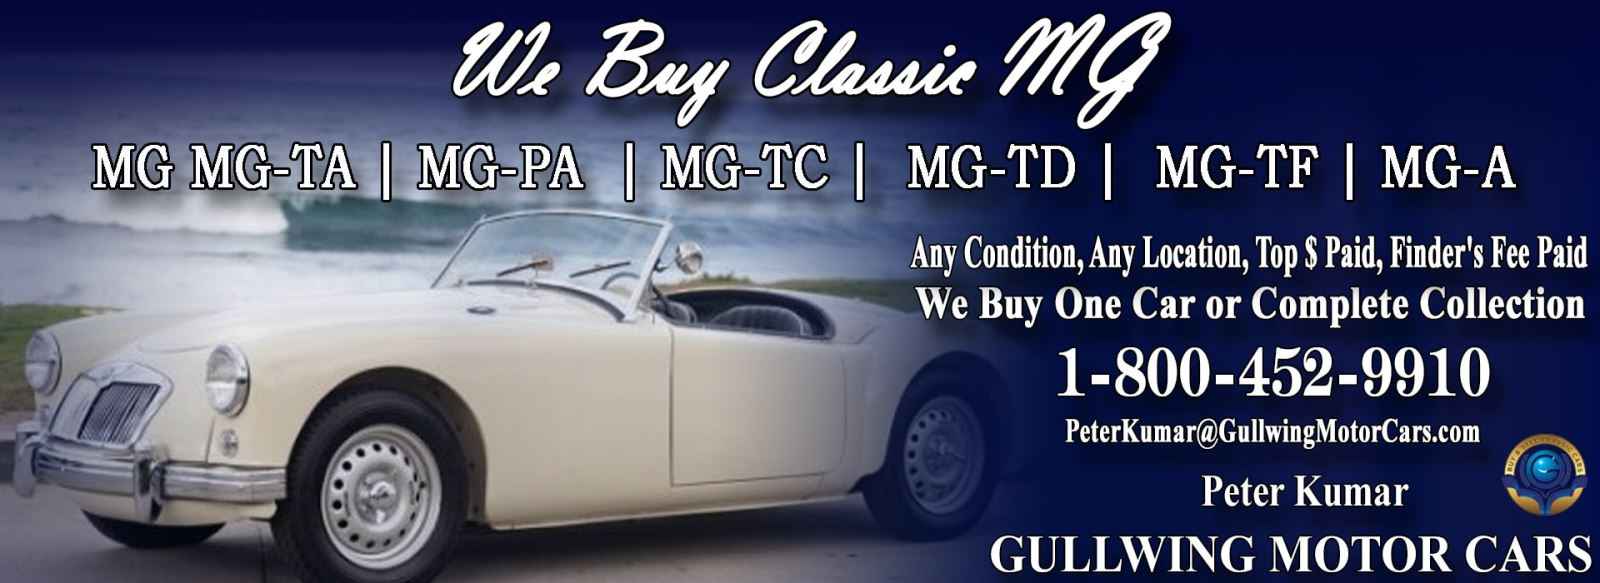 Classic MG for sale, we buy vintage MG. Call Peter Kumar. Gullwing Motor